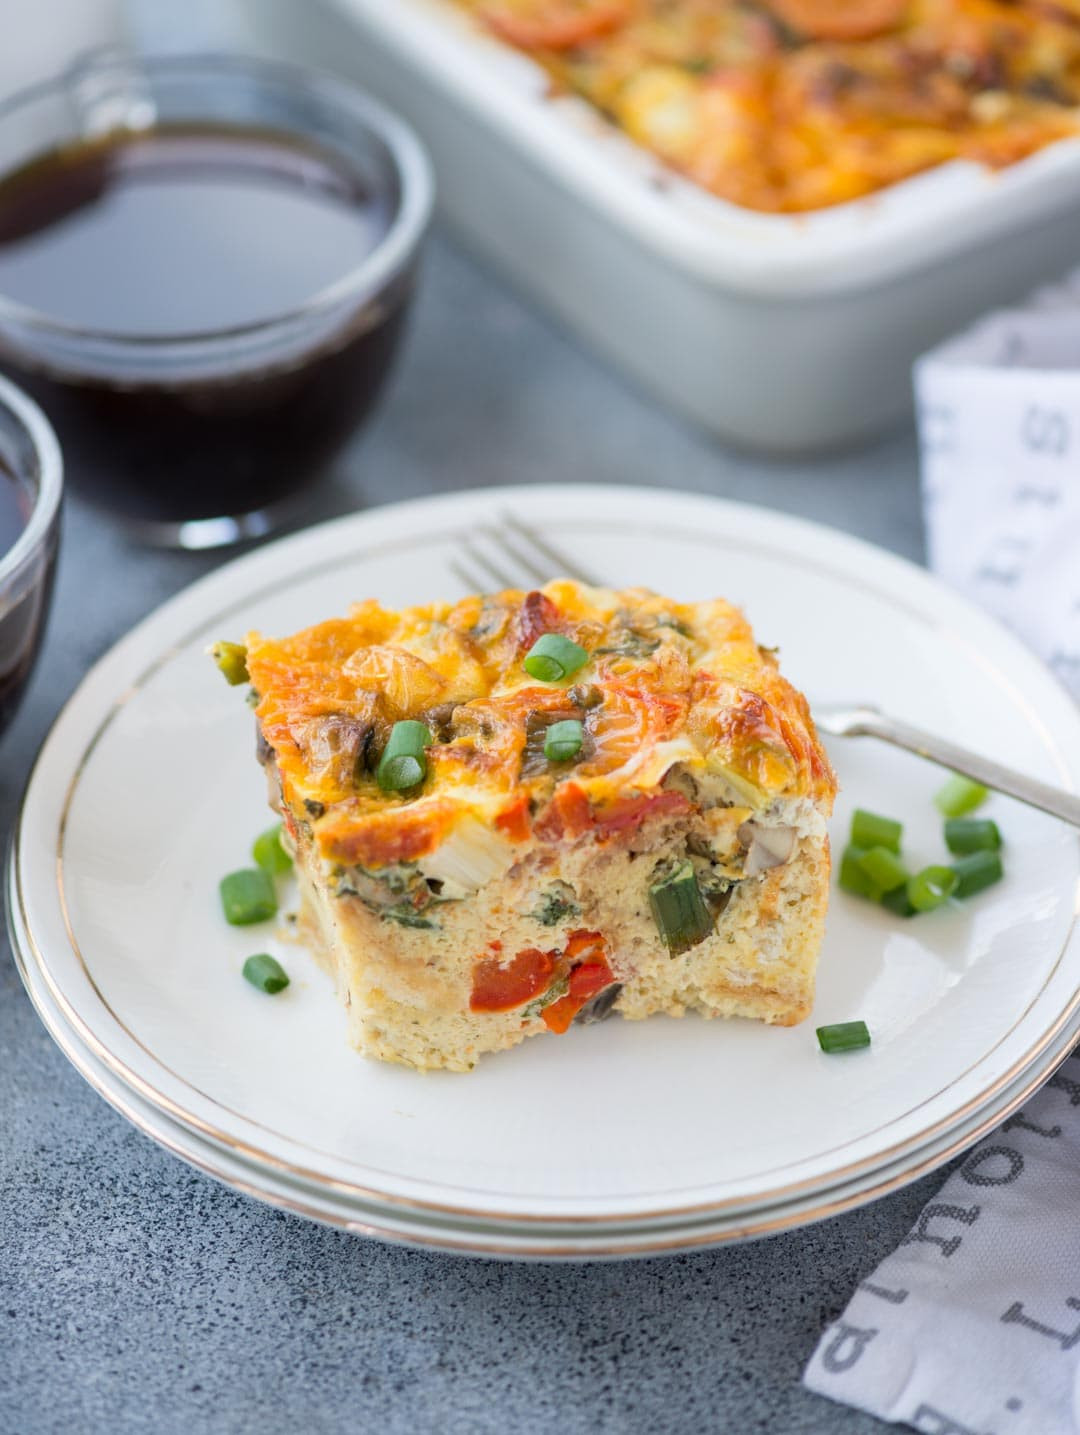 Quick Breakfast Recipes With Bread  EASY BREAKFAST CASSEROLE WITH BREAD The flavours of kitchen